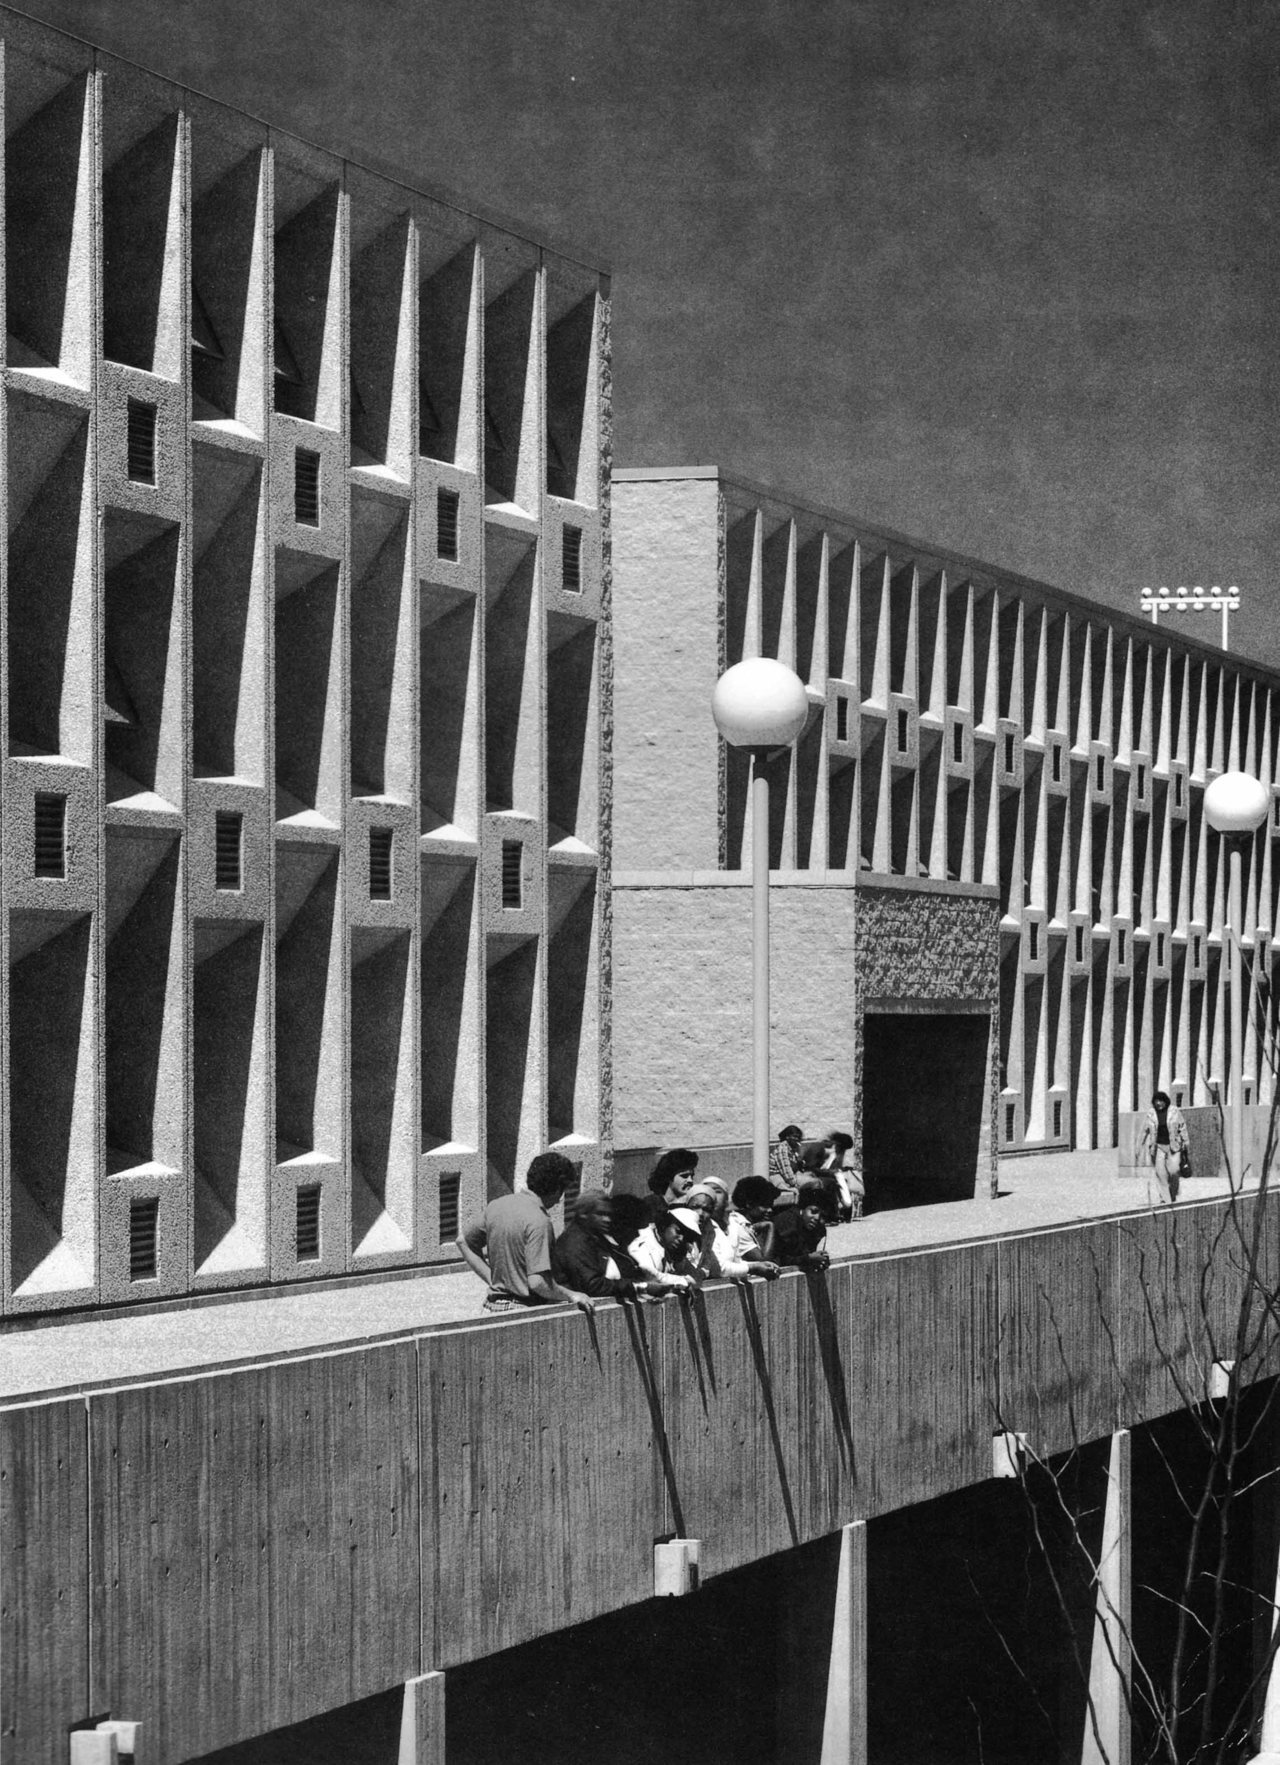 New Campus High School, Roxbury, Massachusetts, 1978 (Marcel Breuer & Associates)